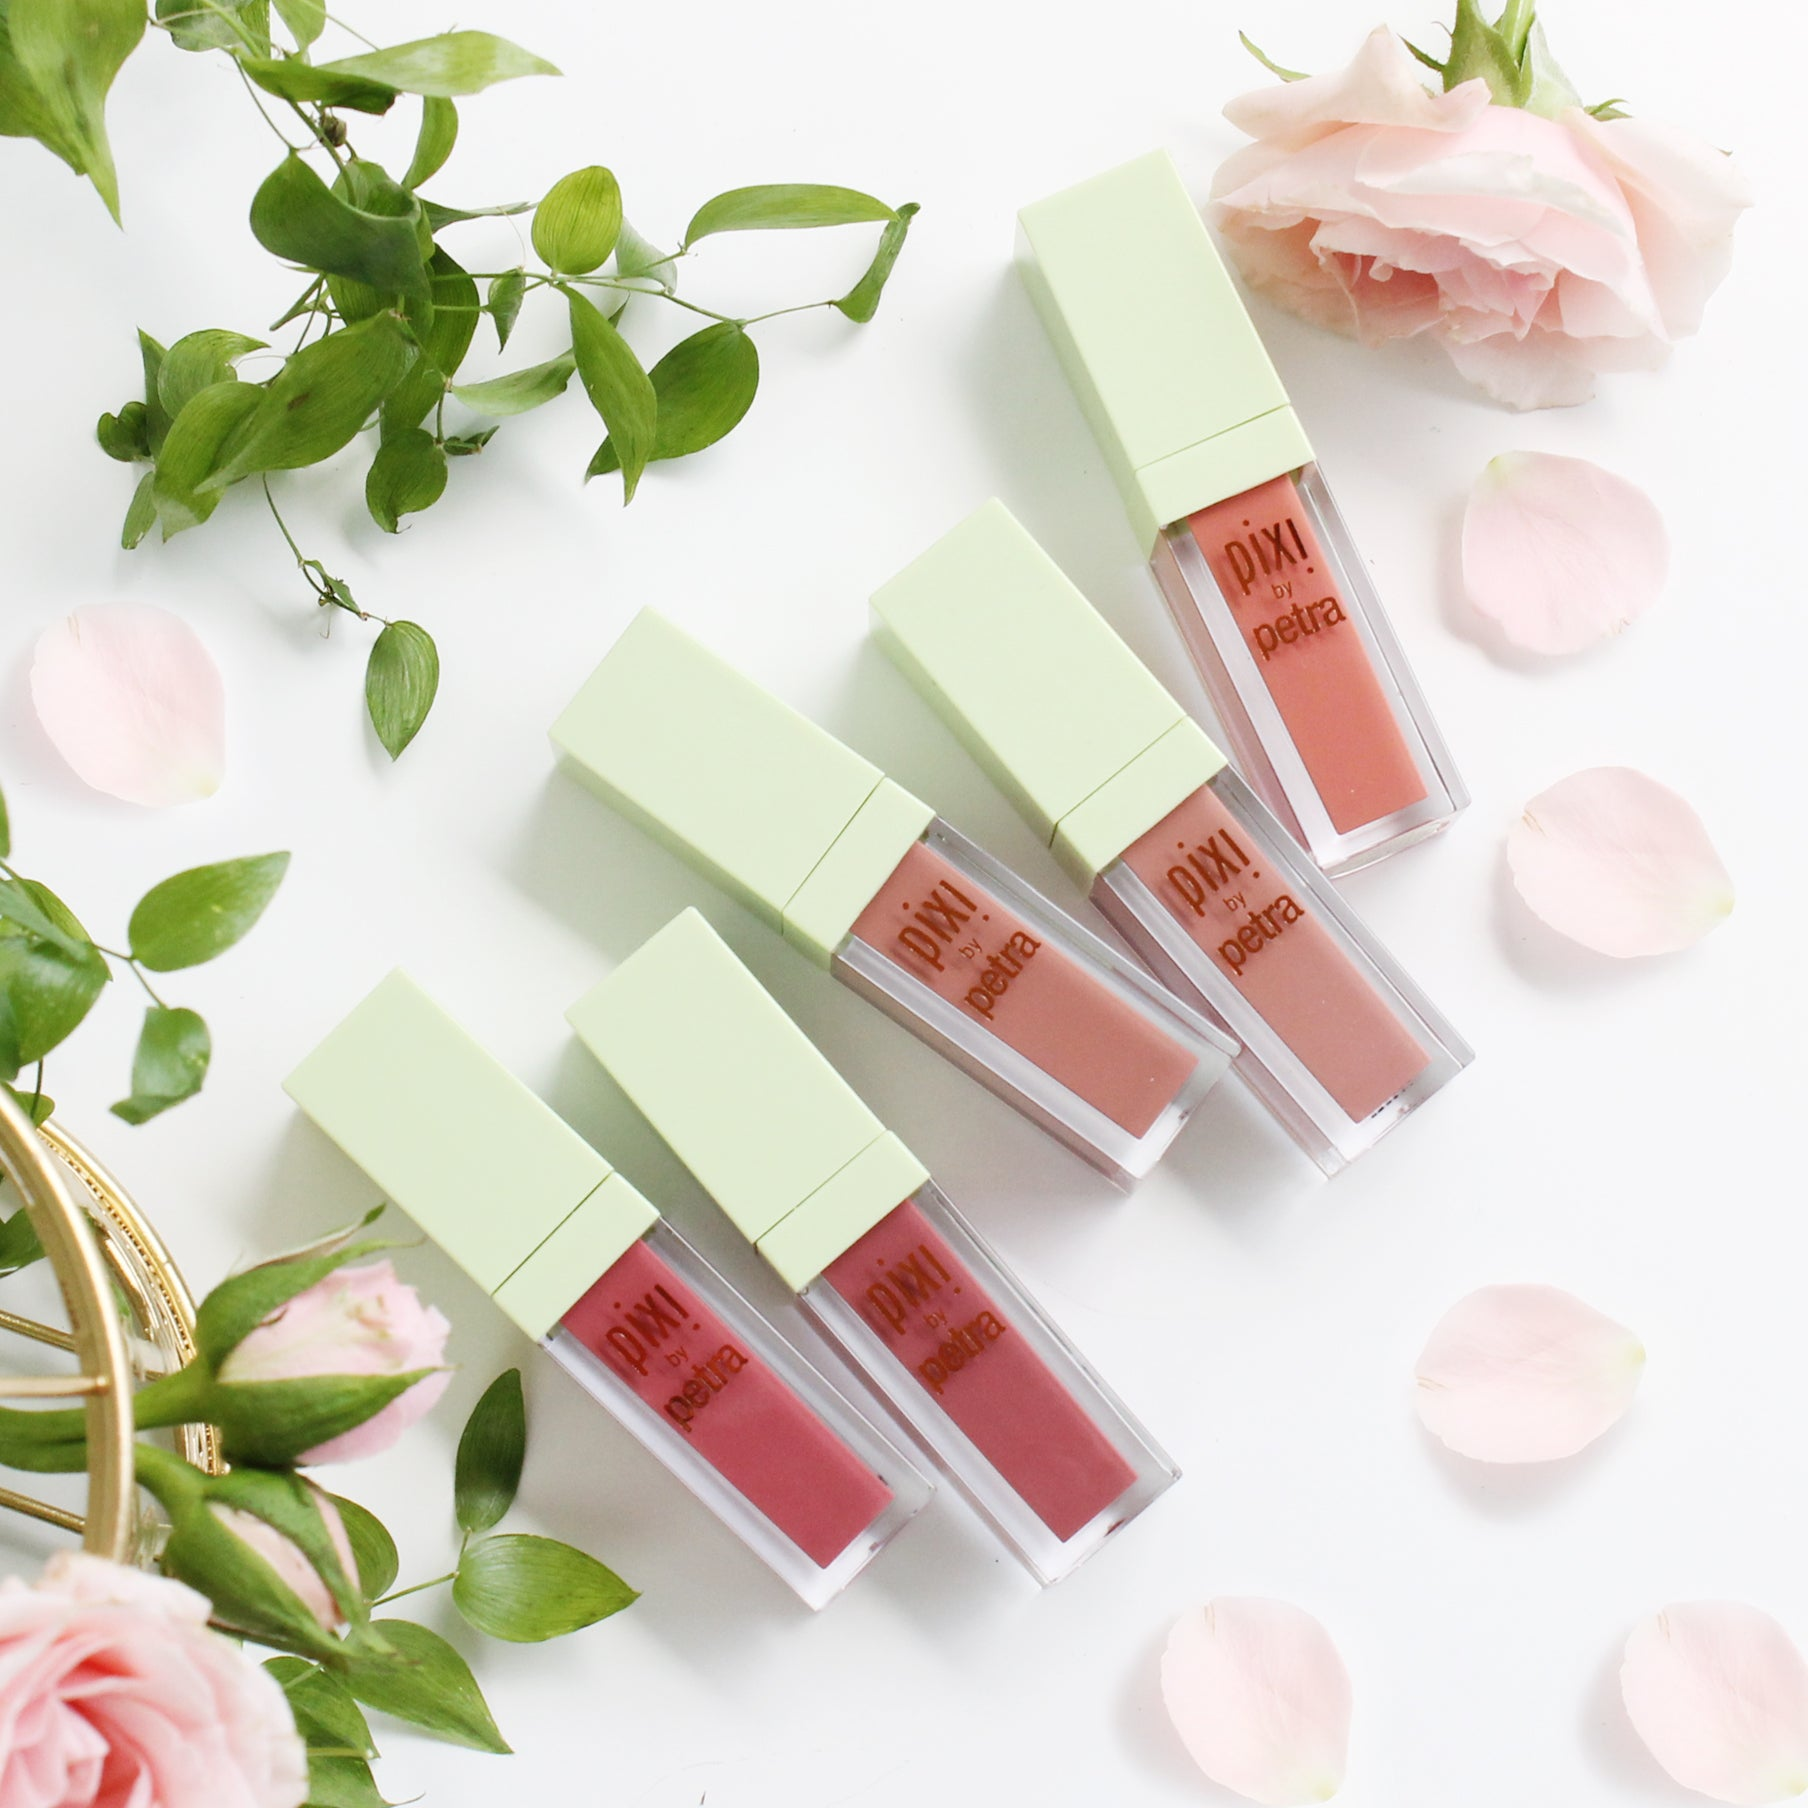 Pixi Beauty MatteLast Liquid Lip